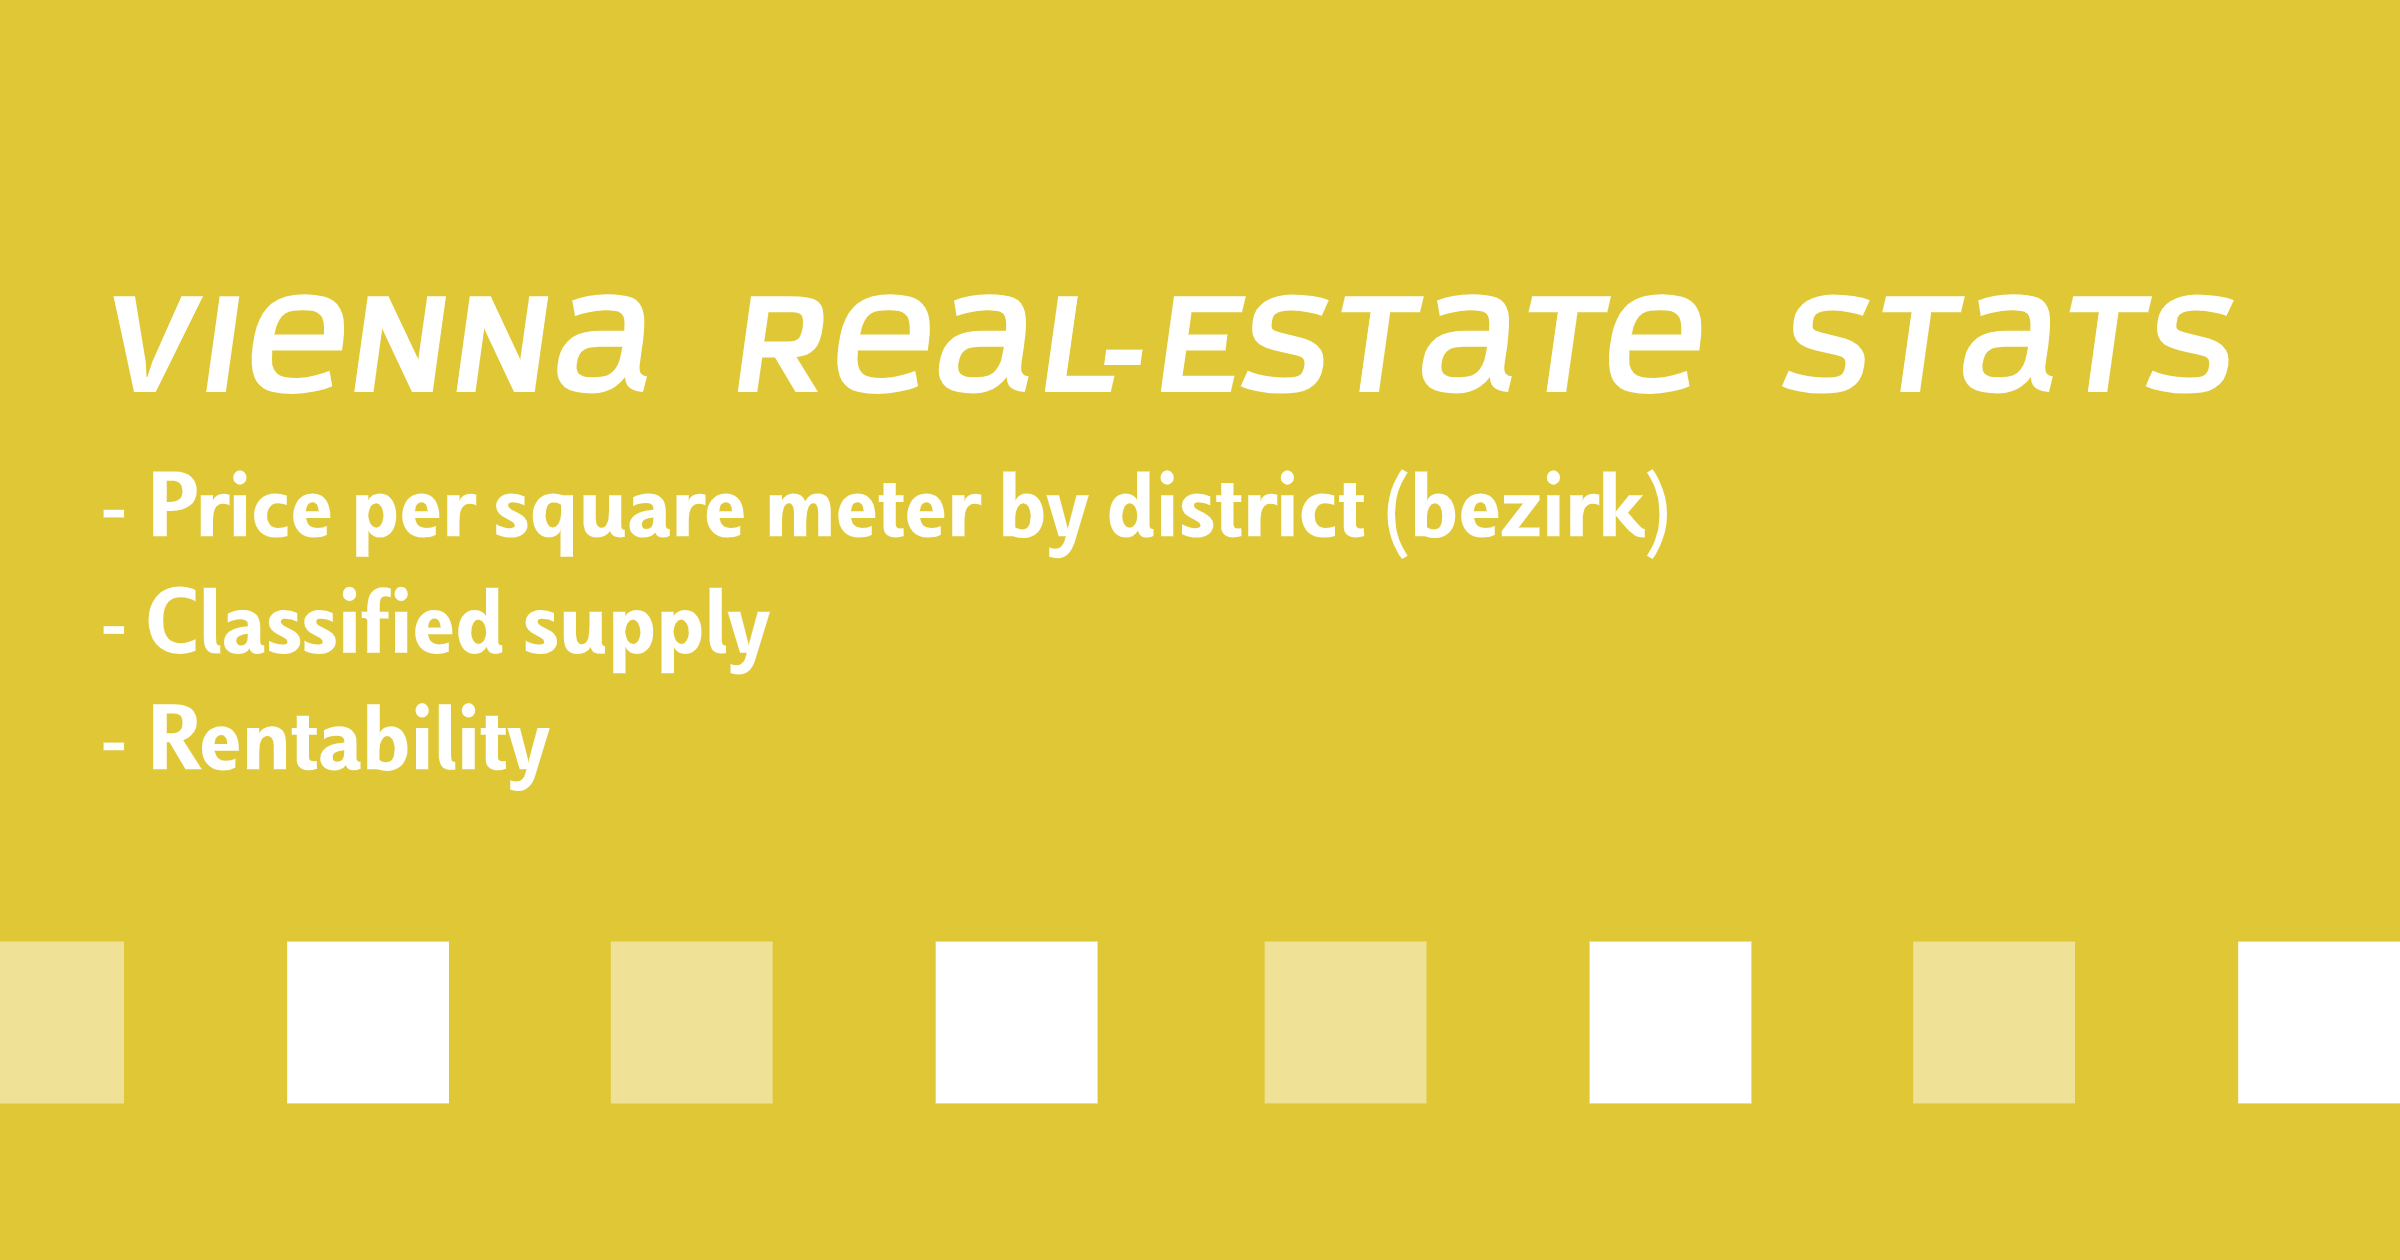 This is the banner image for the article containing Vienna real estate statistics